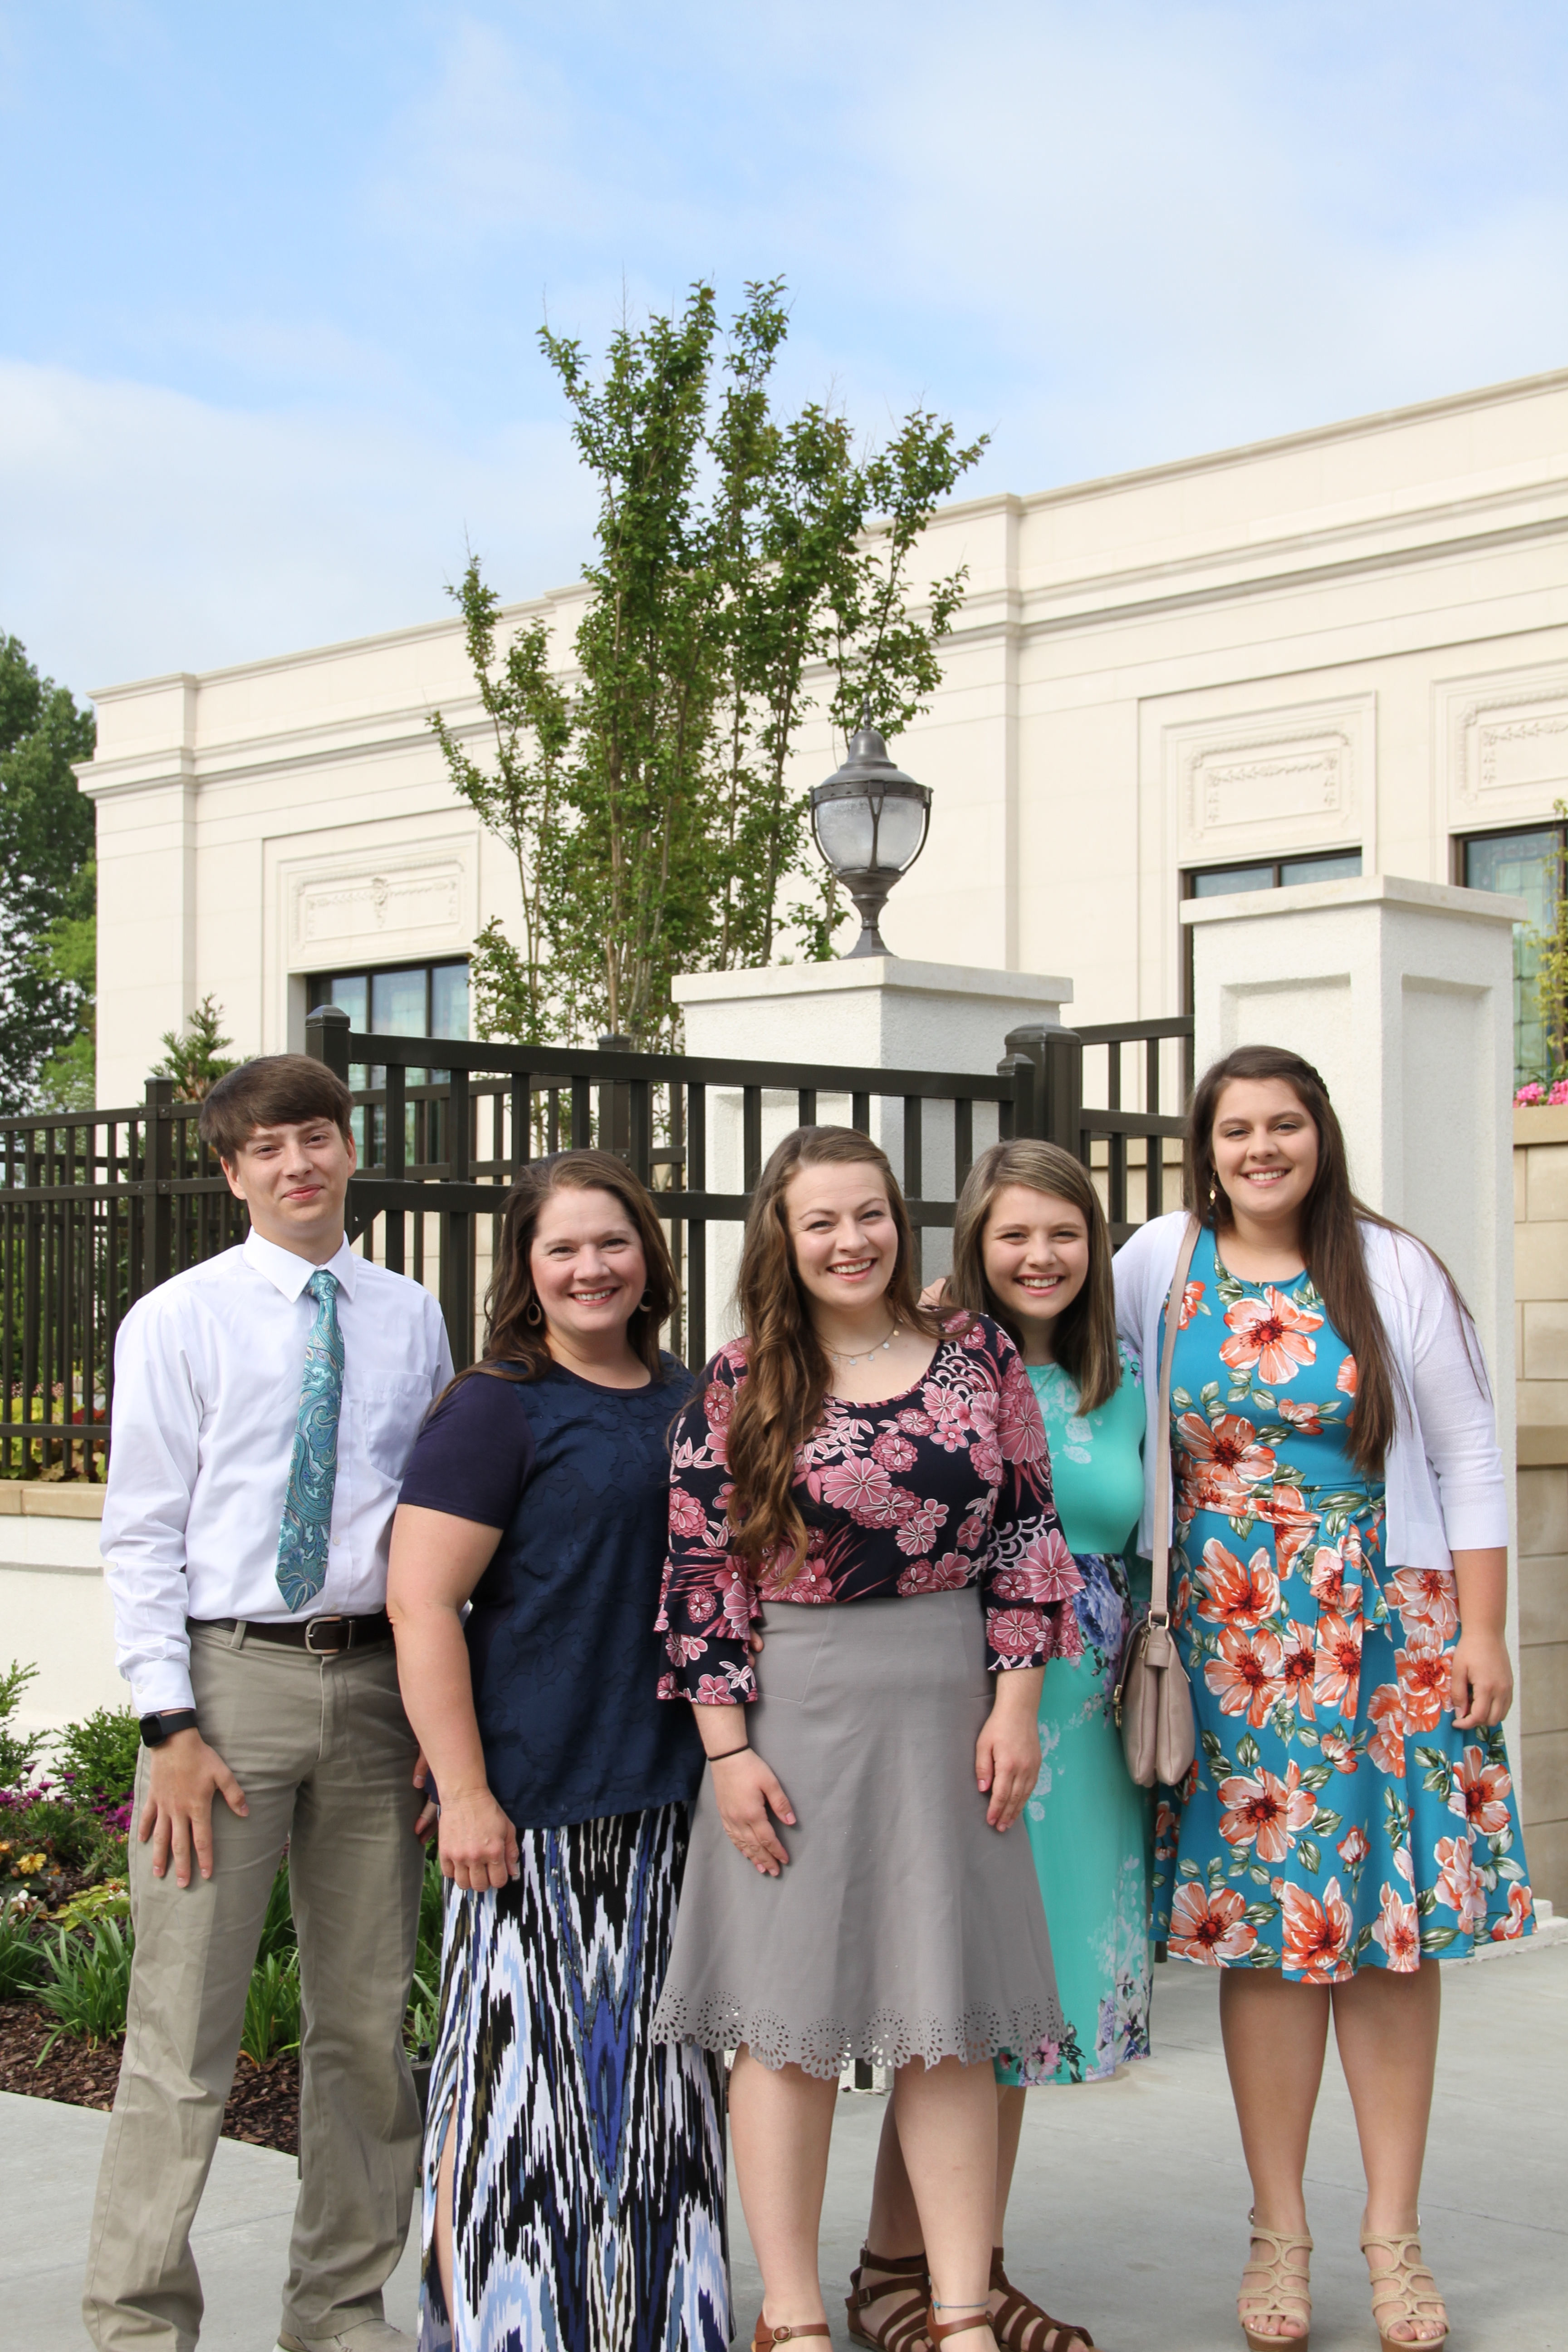 Members from the Memphis Tennessee Temple district pose as they arrive for the rededication of the Memphis temple on May 5, 2019.